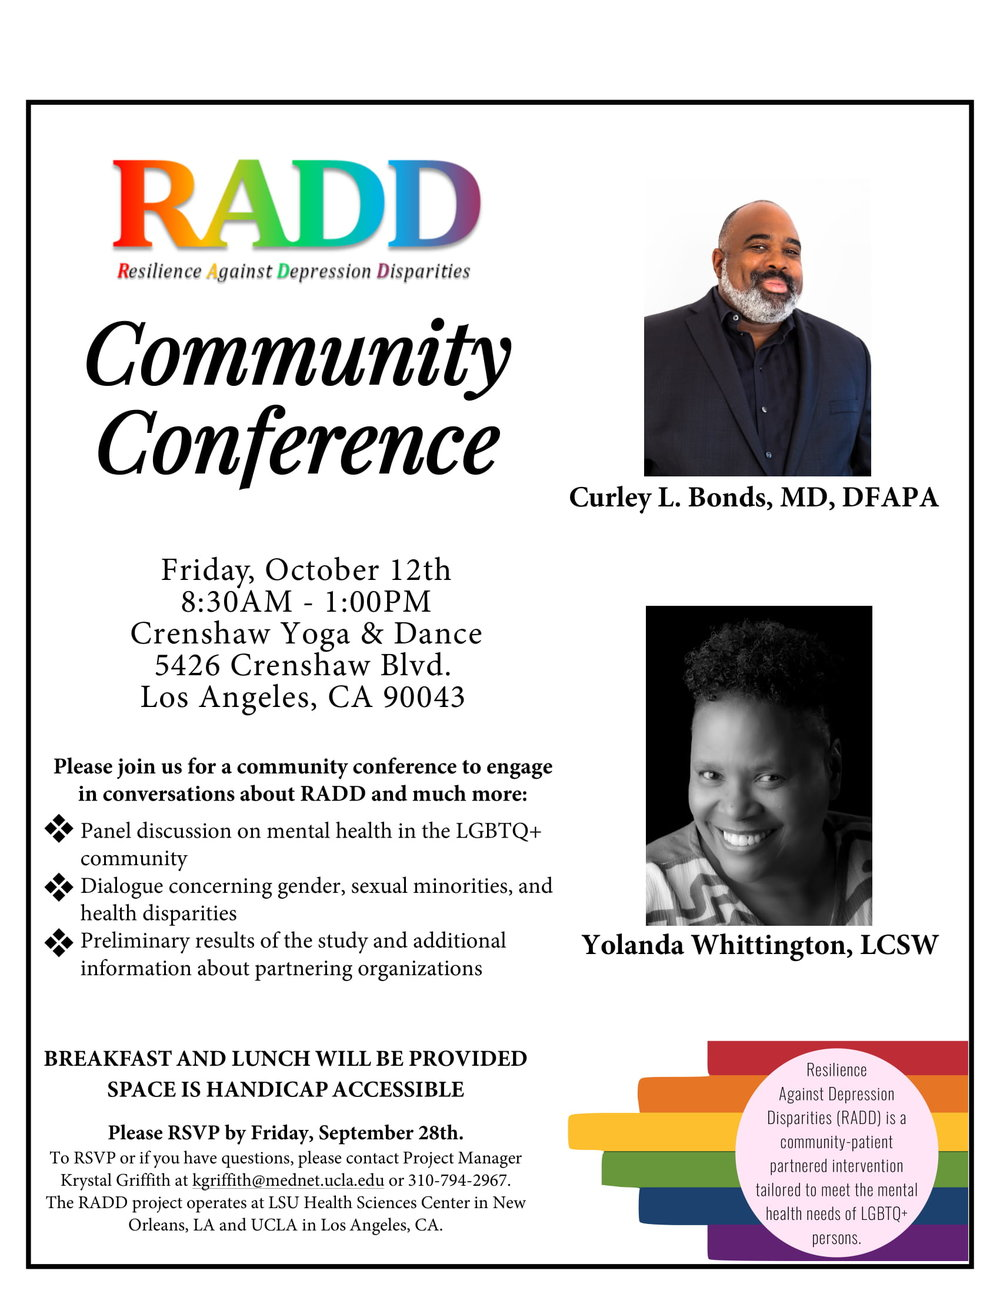 RADD_Community Conference Flyer - Los Angeles 9.12.18-1.jpg